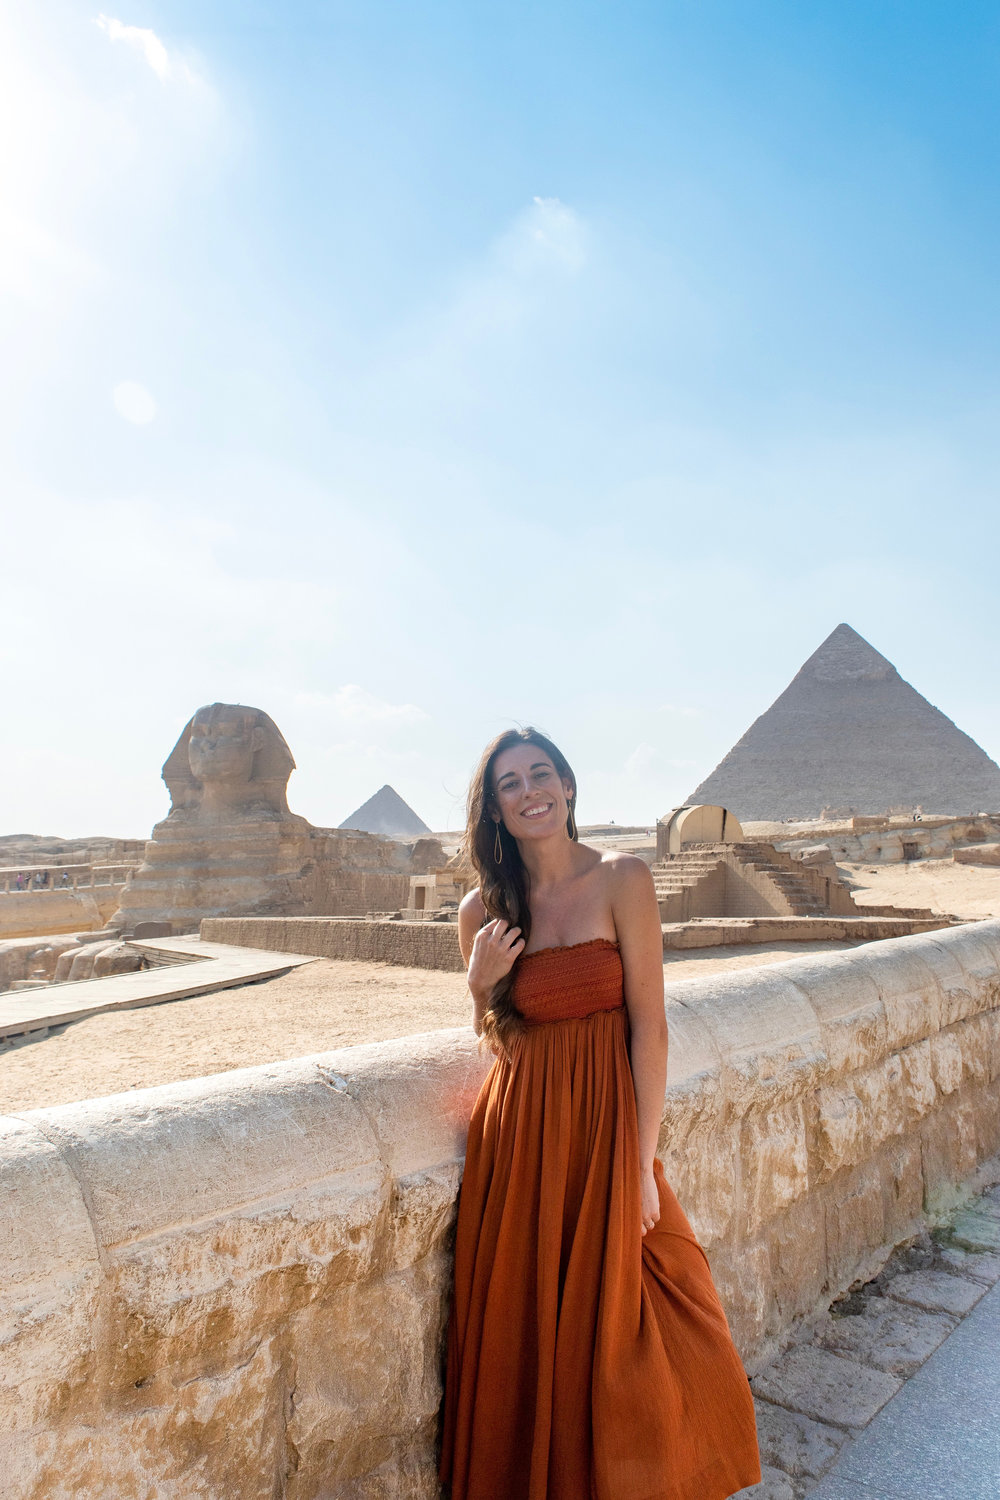 It is hard to go to Egypt and not experience the pyramids up close.